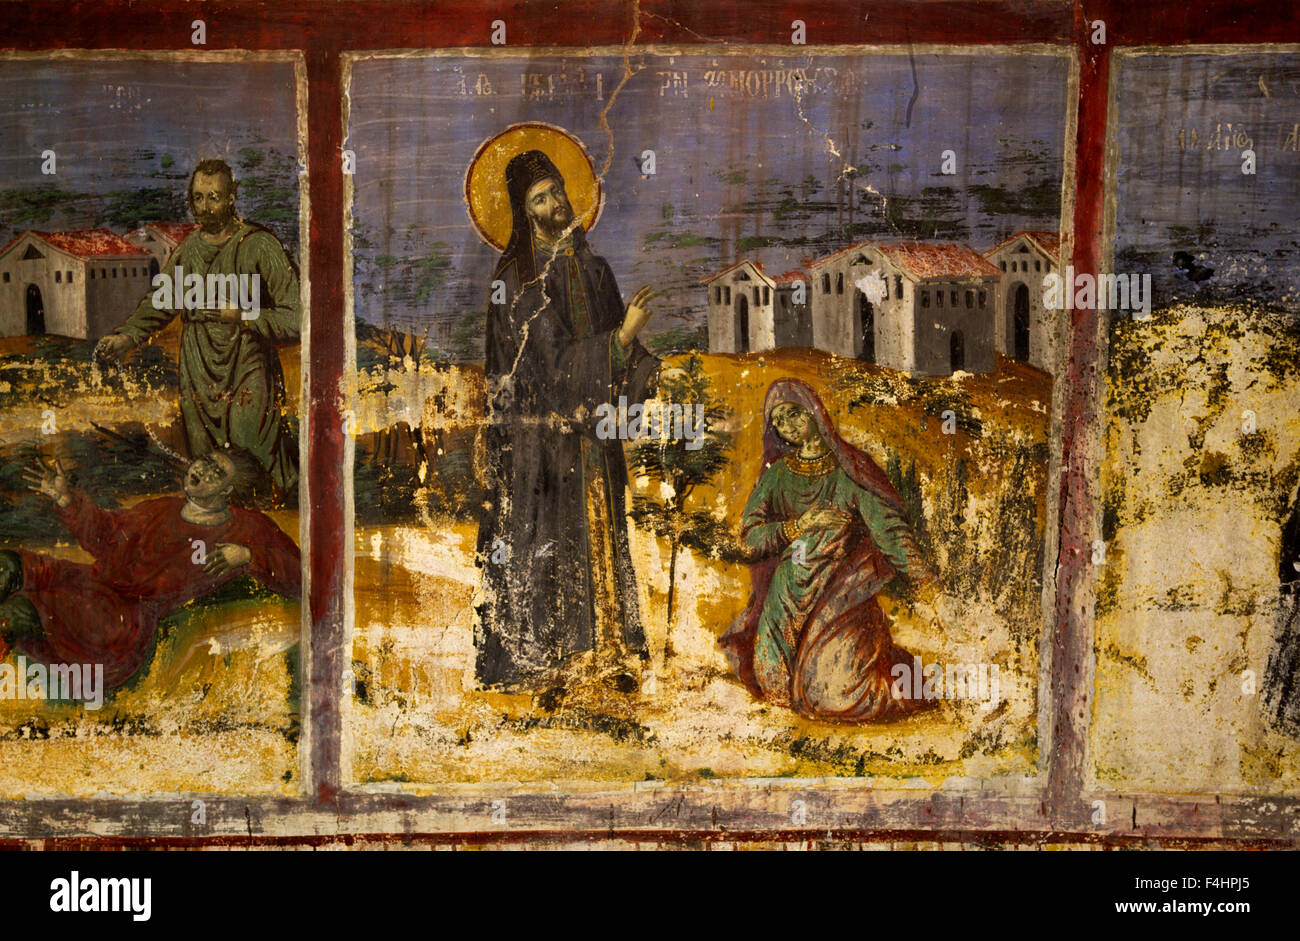 Greek Orthodox iconography of the 19th century, in the monastery of Zavorda (Saint Nicanor), in Greece. - Stock Image